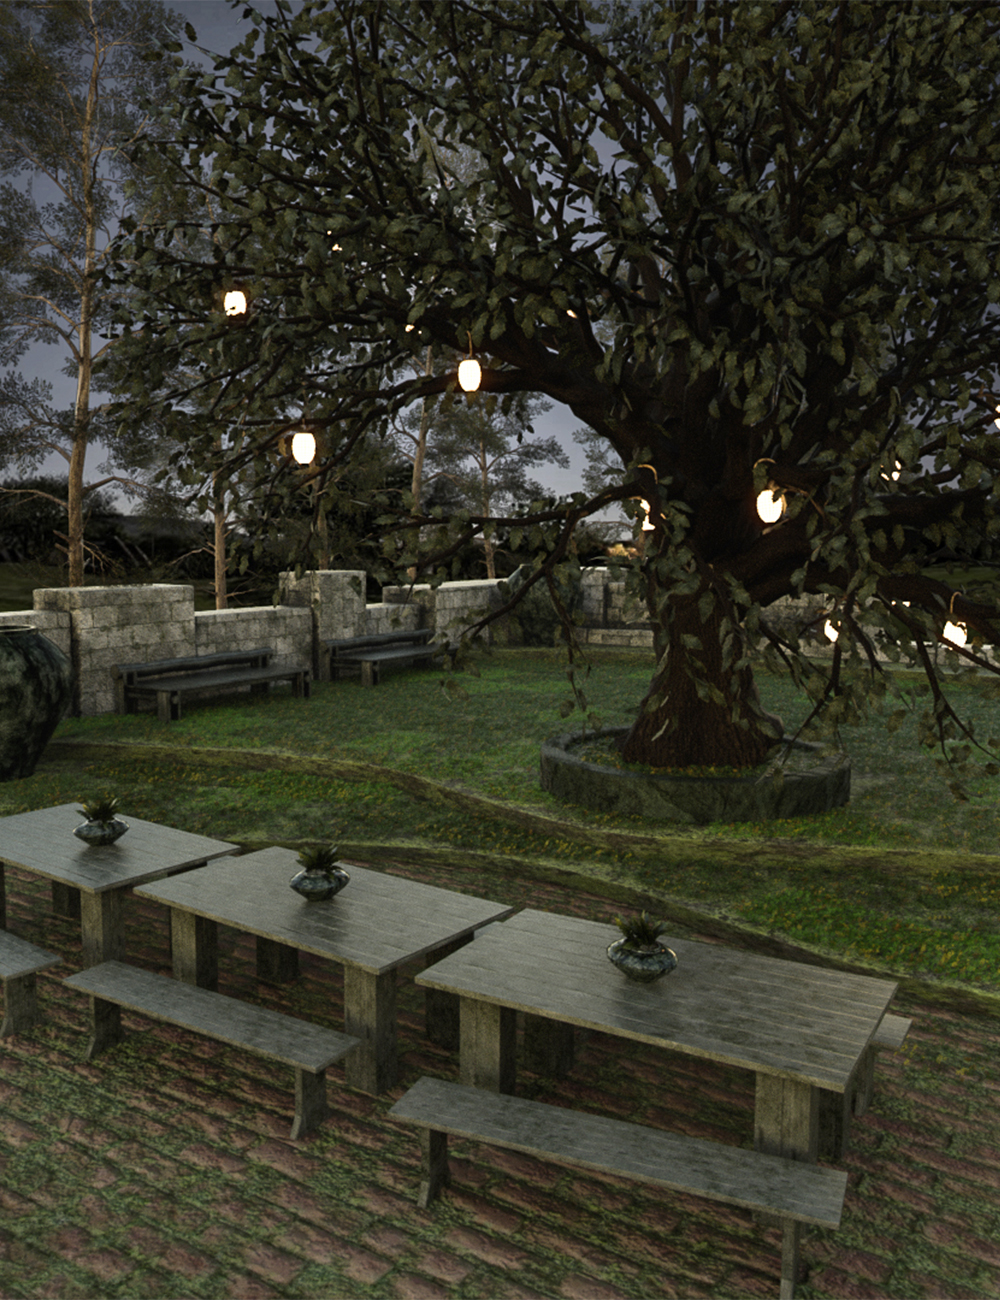 Enchanting Dining by: clacydarch3d, 3D Models by Daz 3D